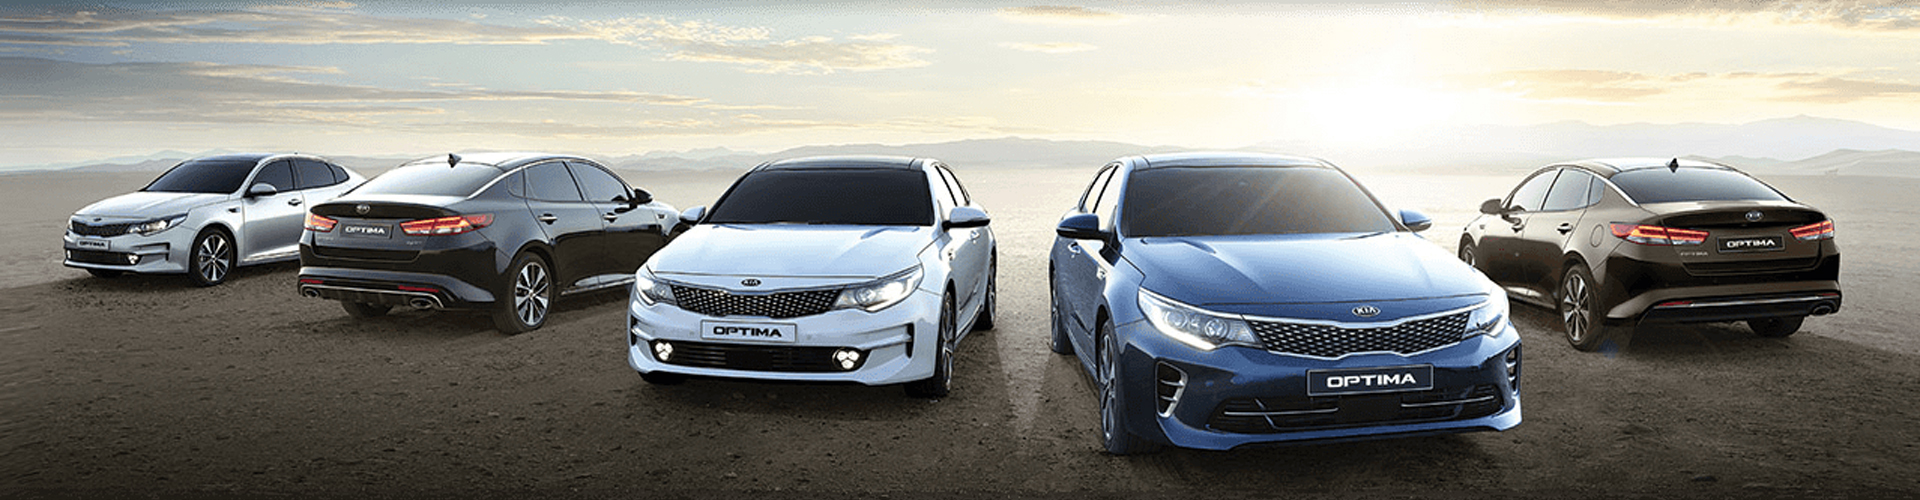 The Best New Kia Zero Down Lease Offers Are At Quirk Kia In Braintree.  Quirk Kia Works Hard To Bring Our Customers The Best Prices In The Area, ...